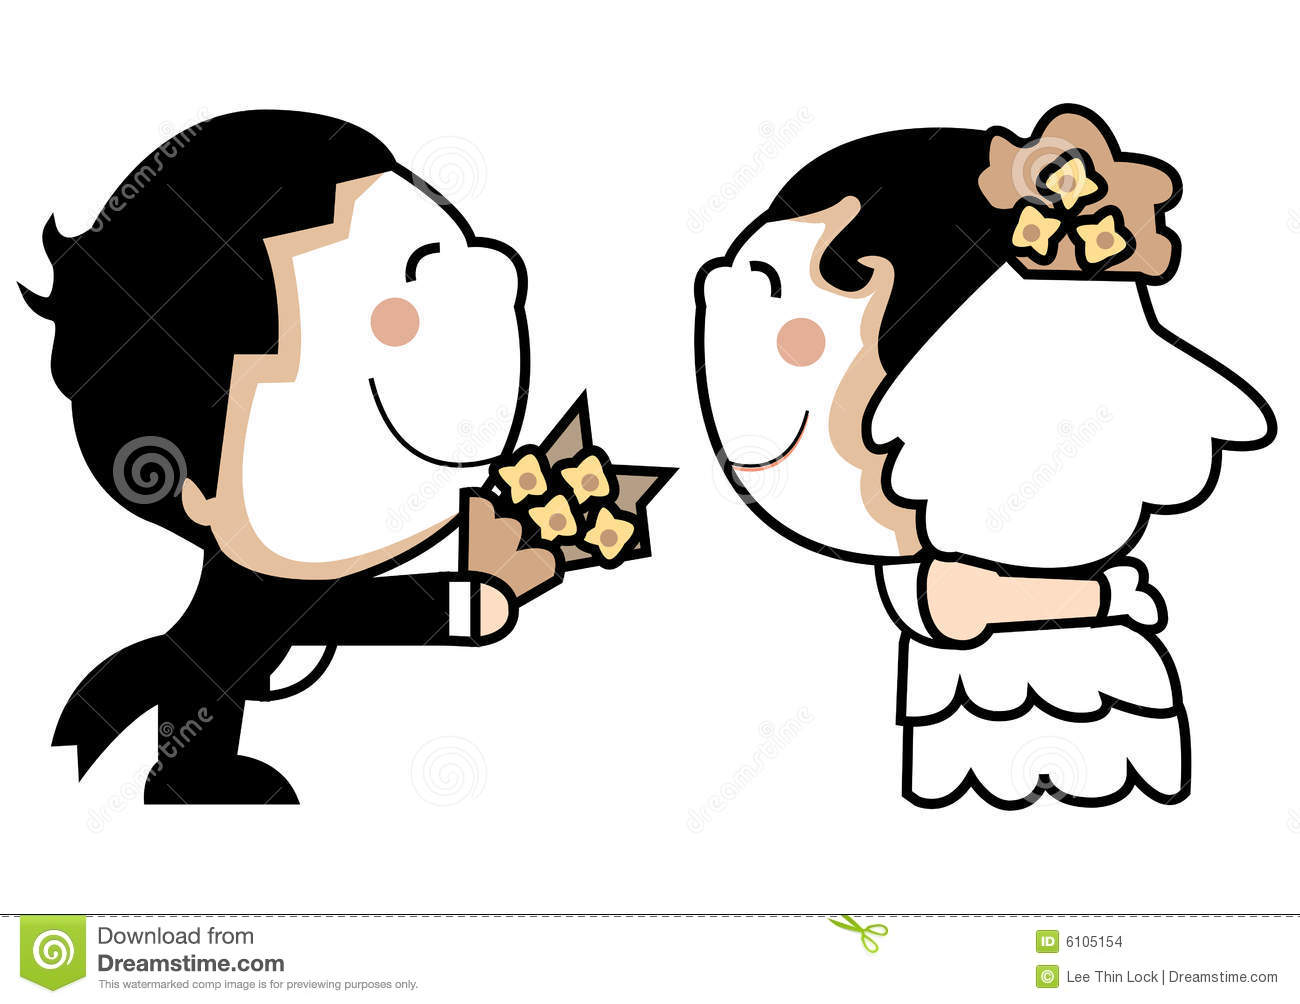 Cute wedding couple stock vector. Illustration of smile.